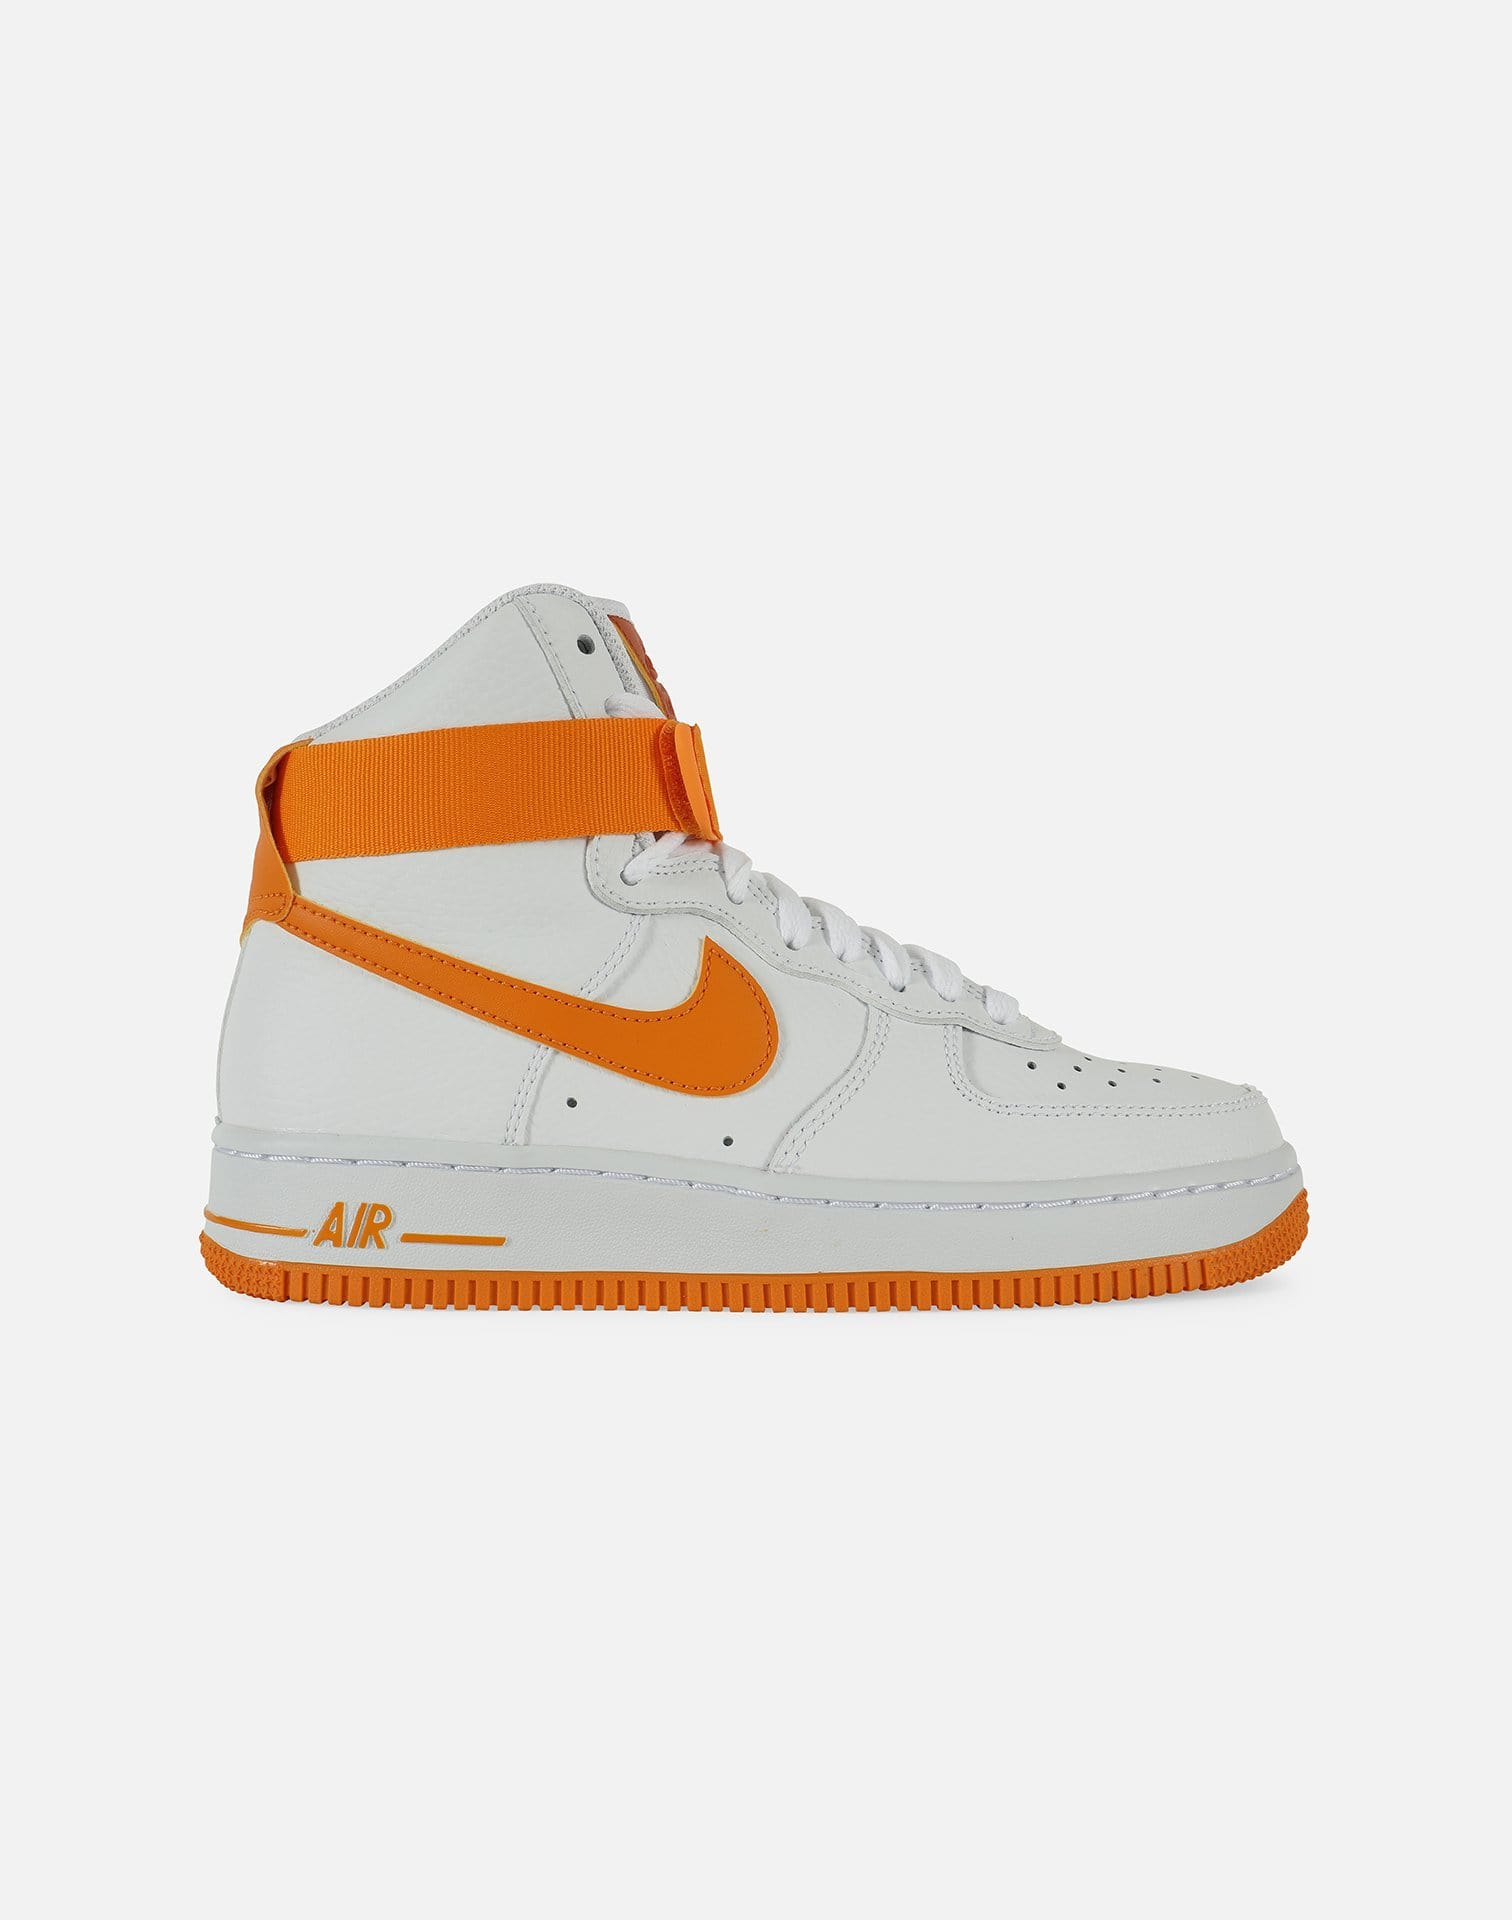 Nike Women's Air Force 1 '08 High